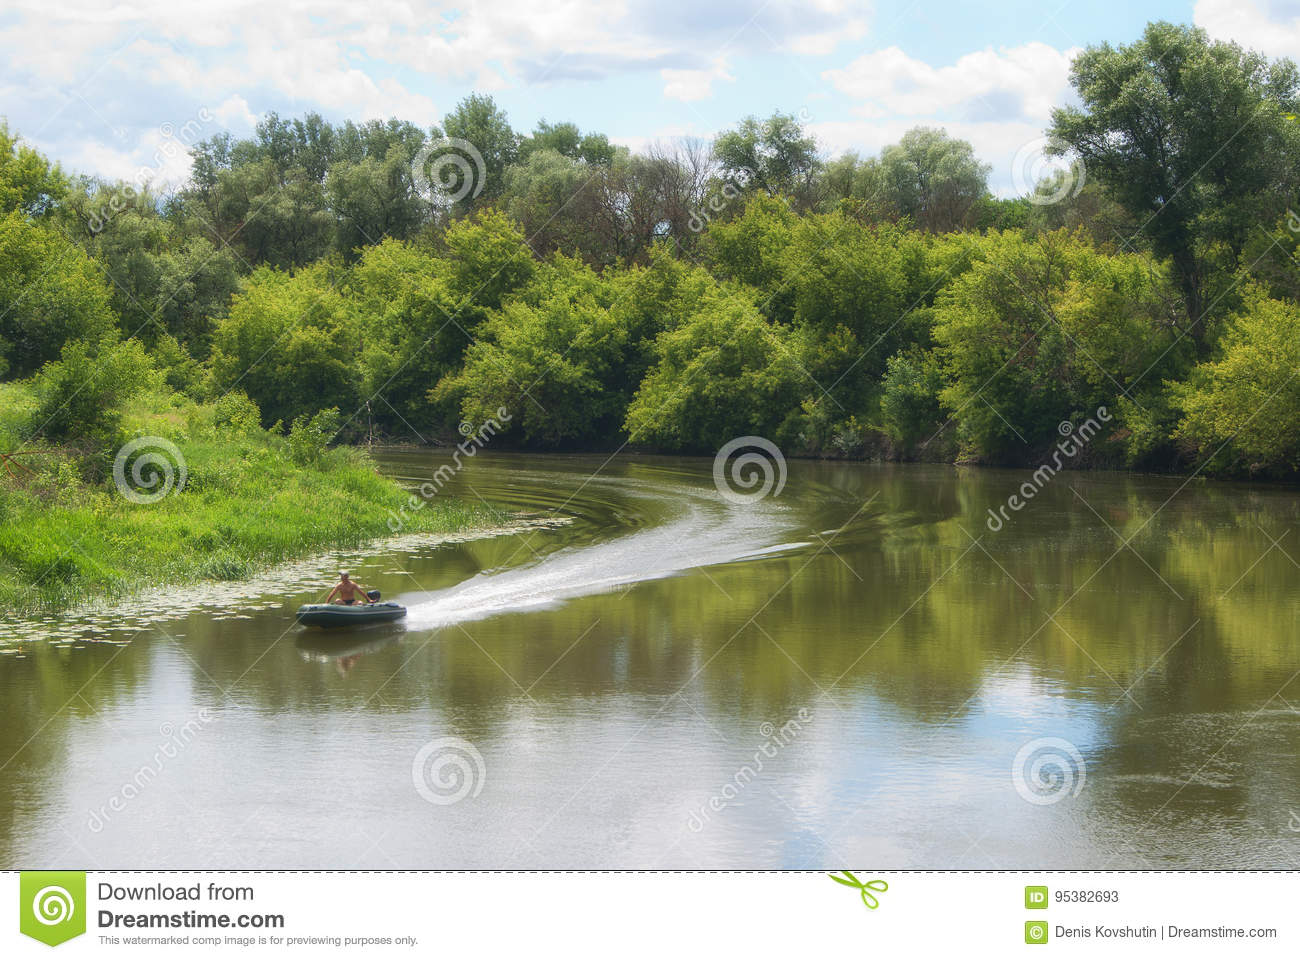 Moving on a motor boat on a river with forested coasts